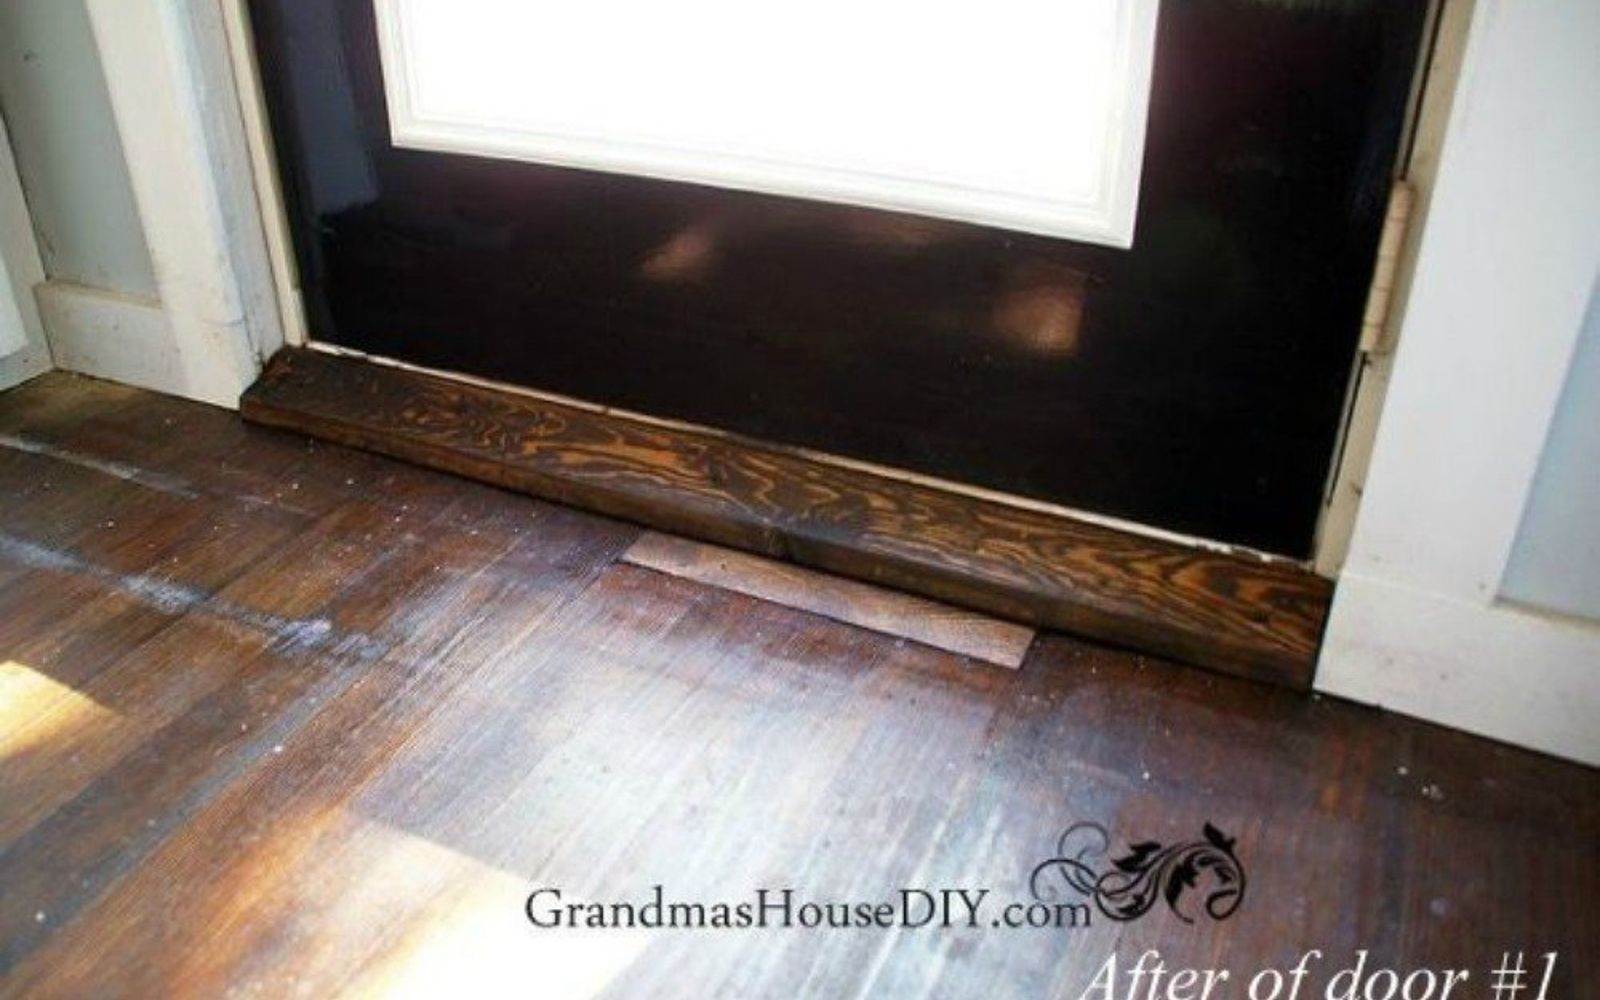 s 16 affordable ways to warm up your home this winter, home decor, Make your own door threshold